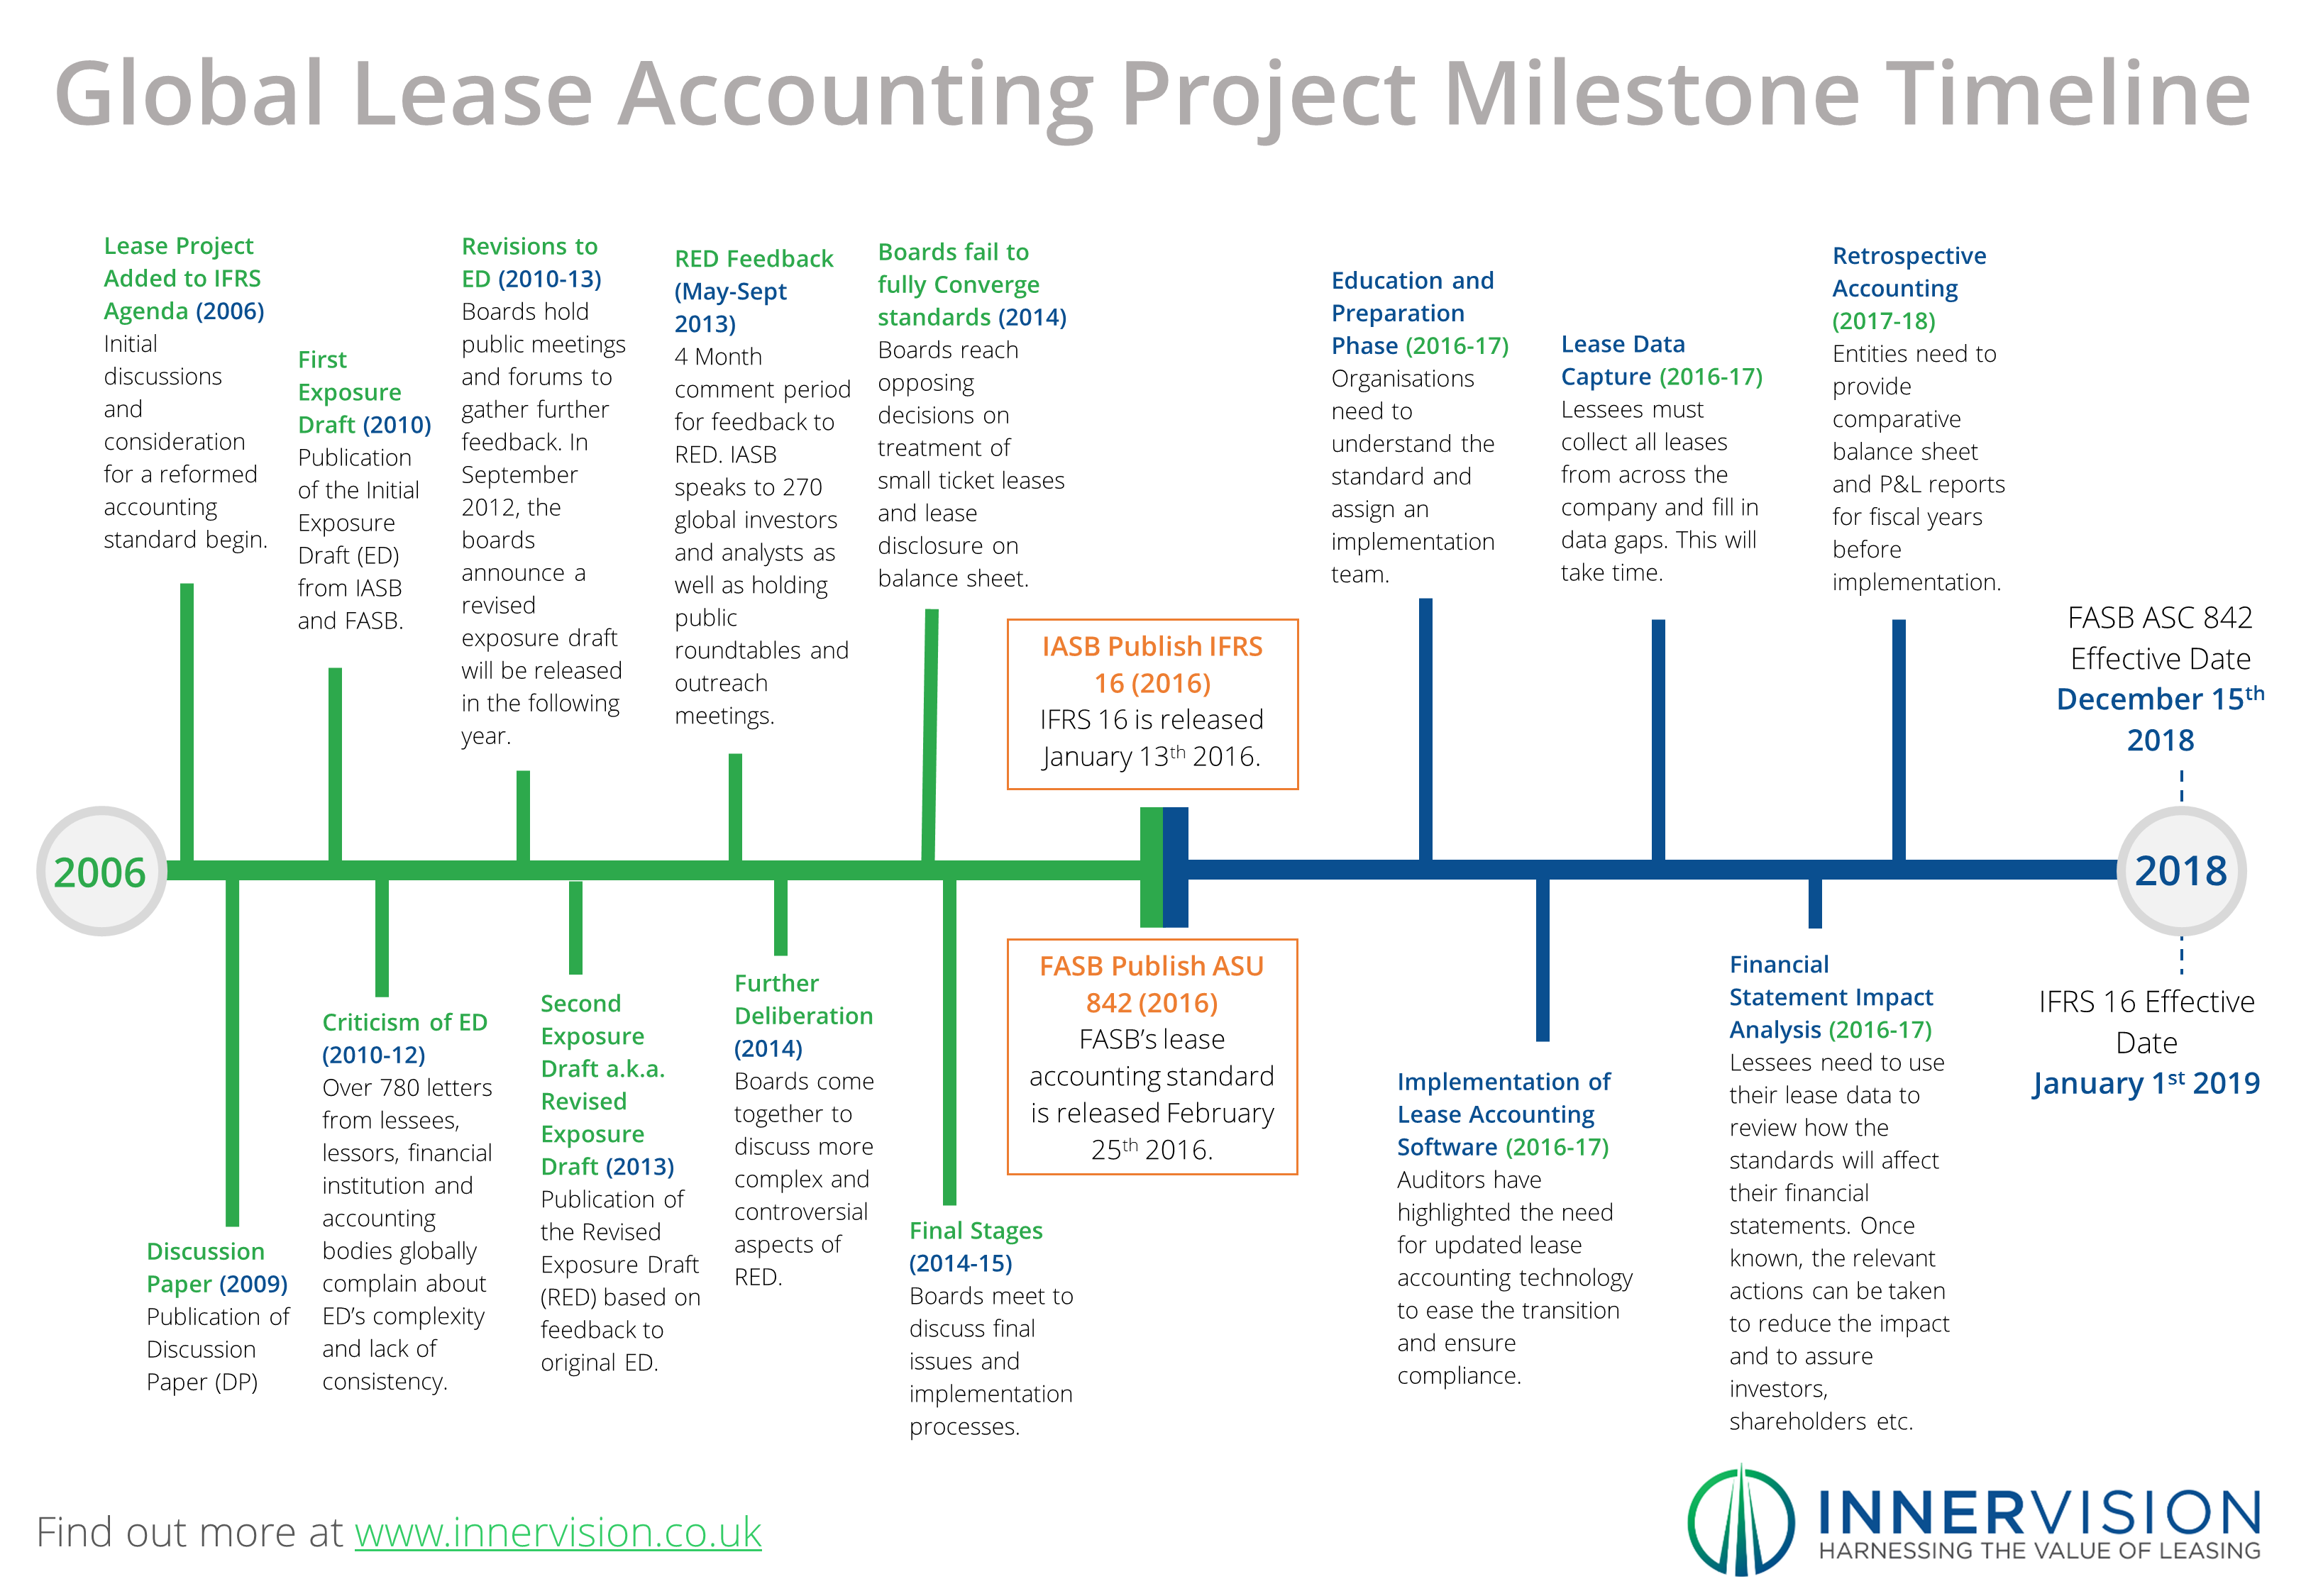 Updated_A_Timeline_of_the_IFRS_Leases_Project_Milestones_Infographic_-_Innervision.png